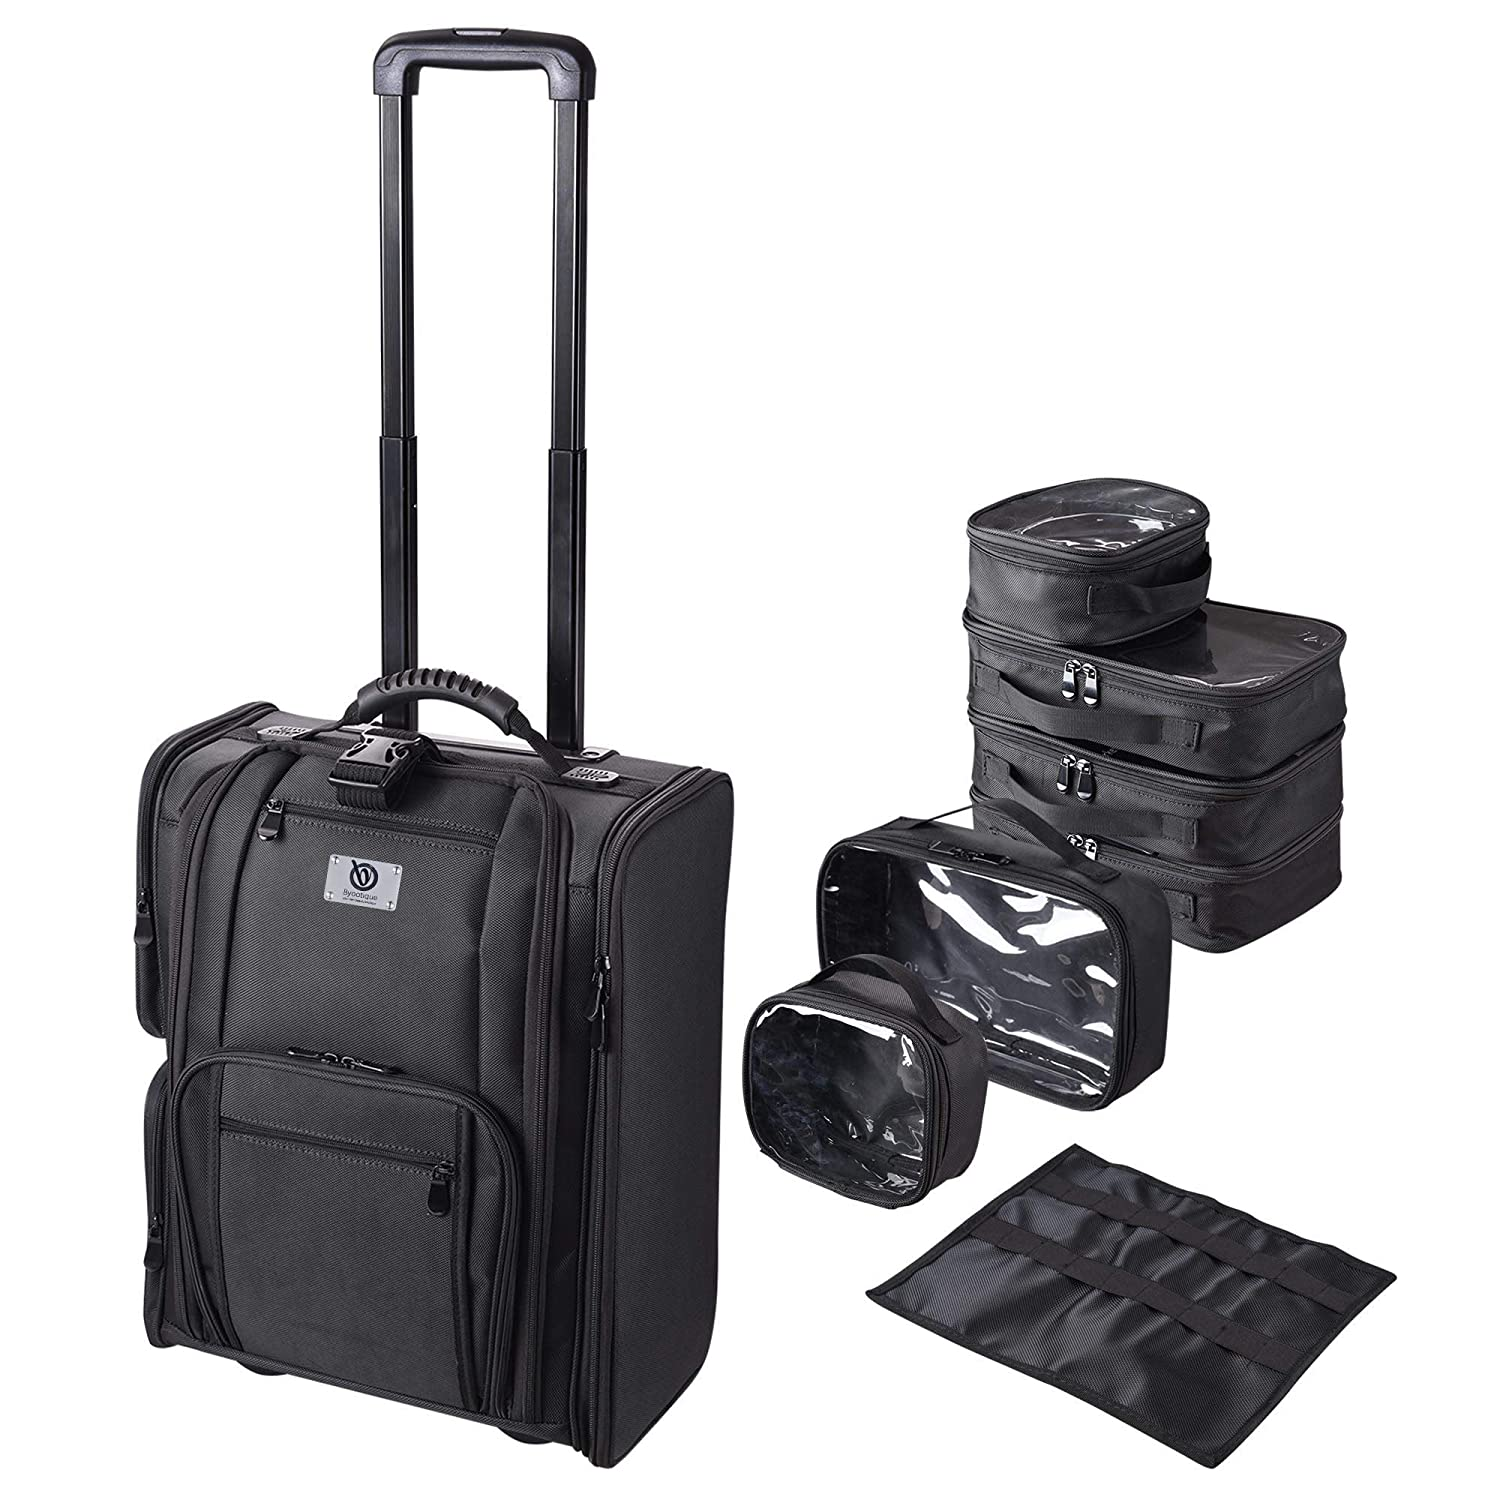 Makeup Case - Professional Soft Sided Selling and selling Travel Cosmetic Or online shopping Rolling